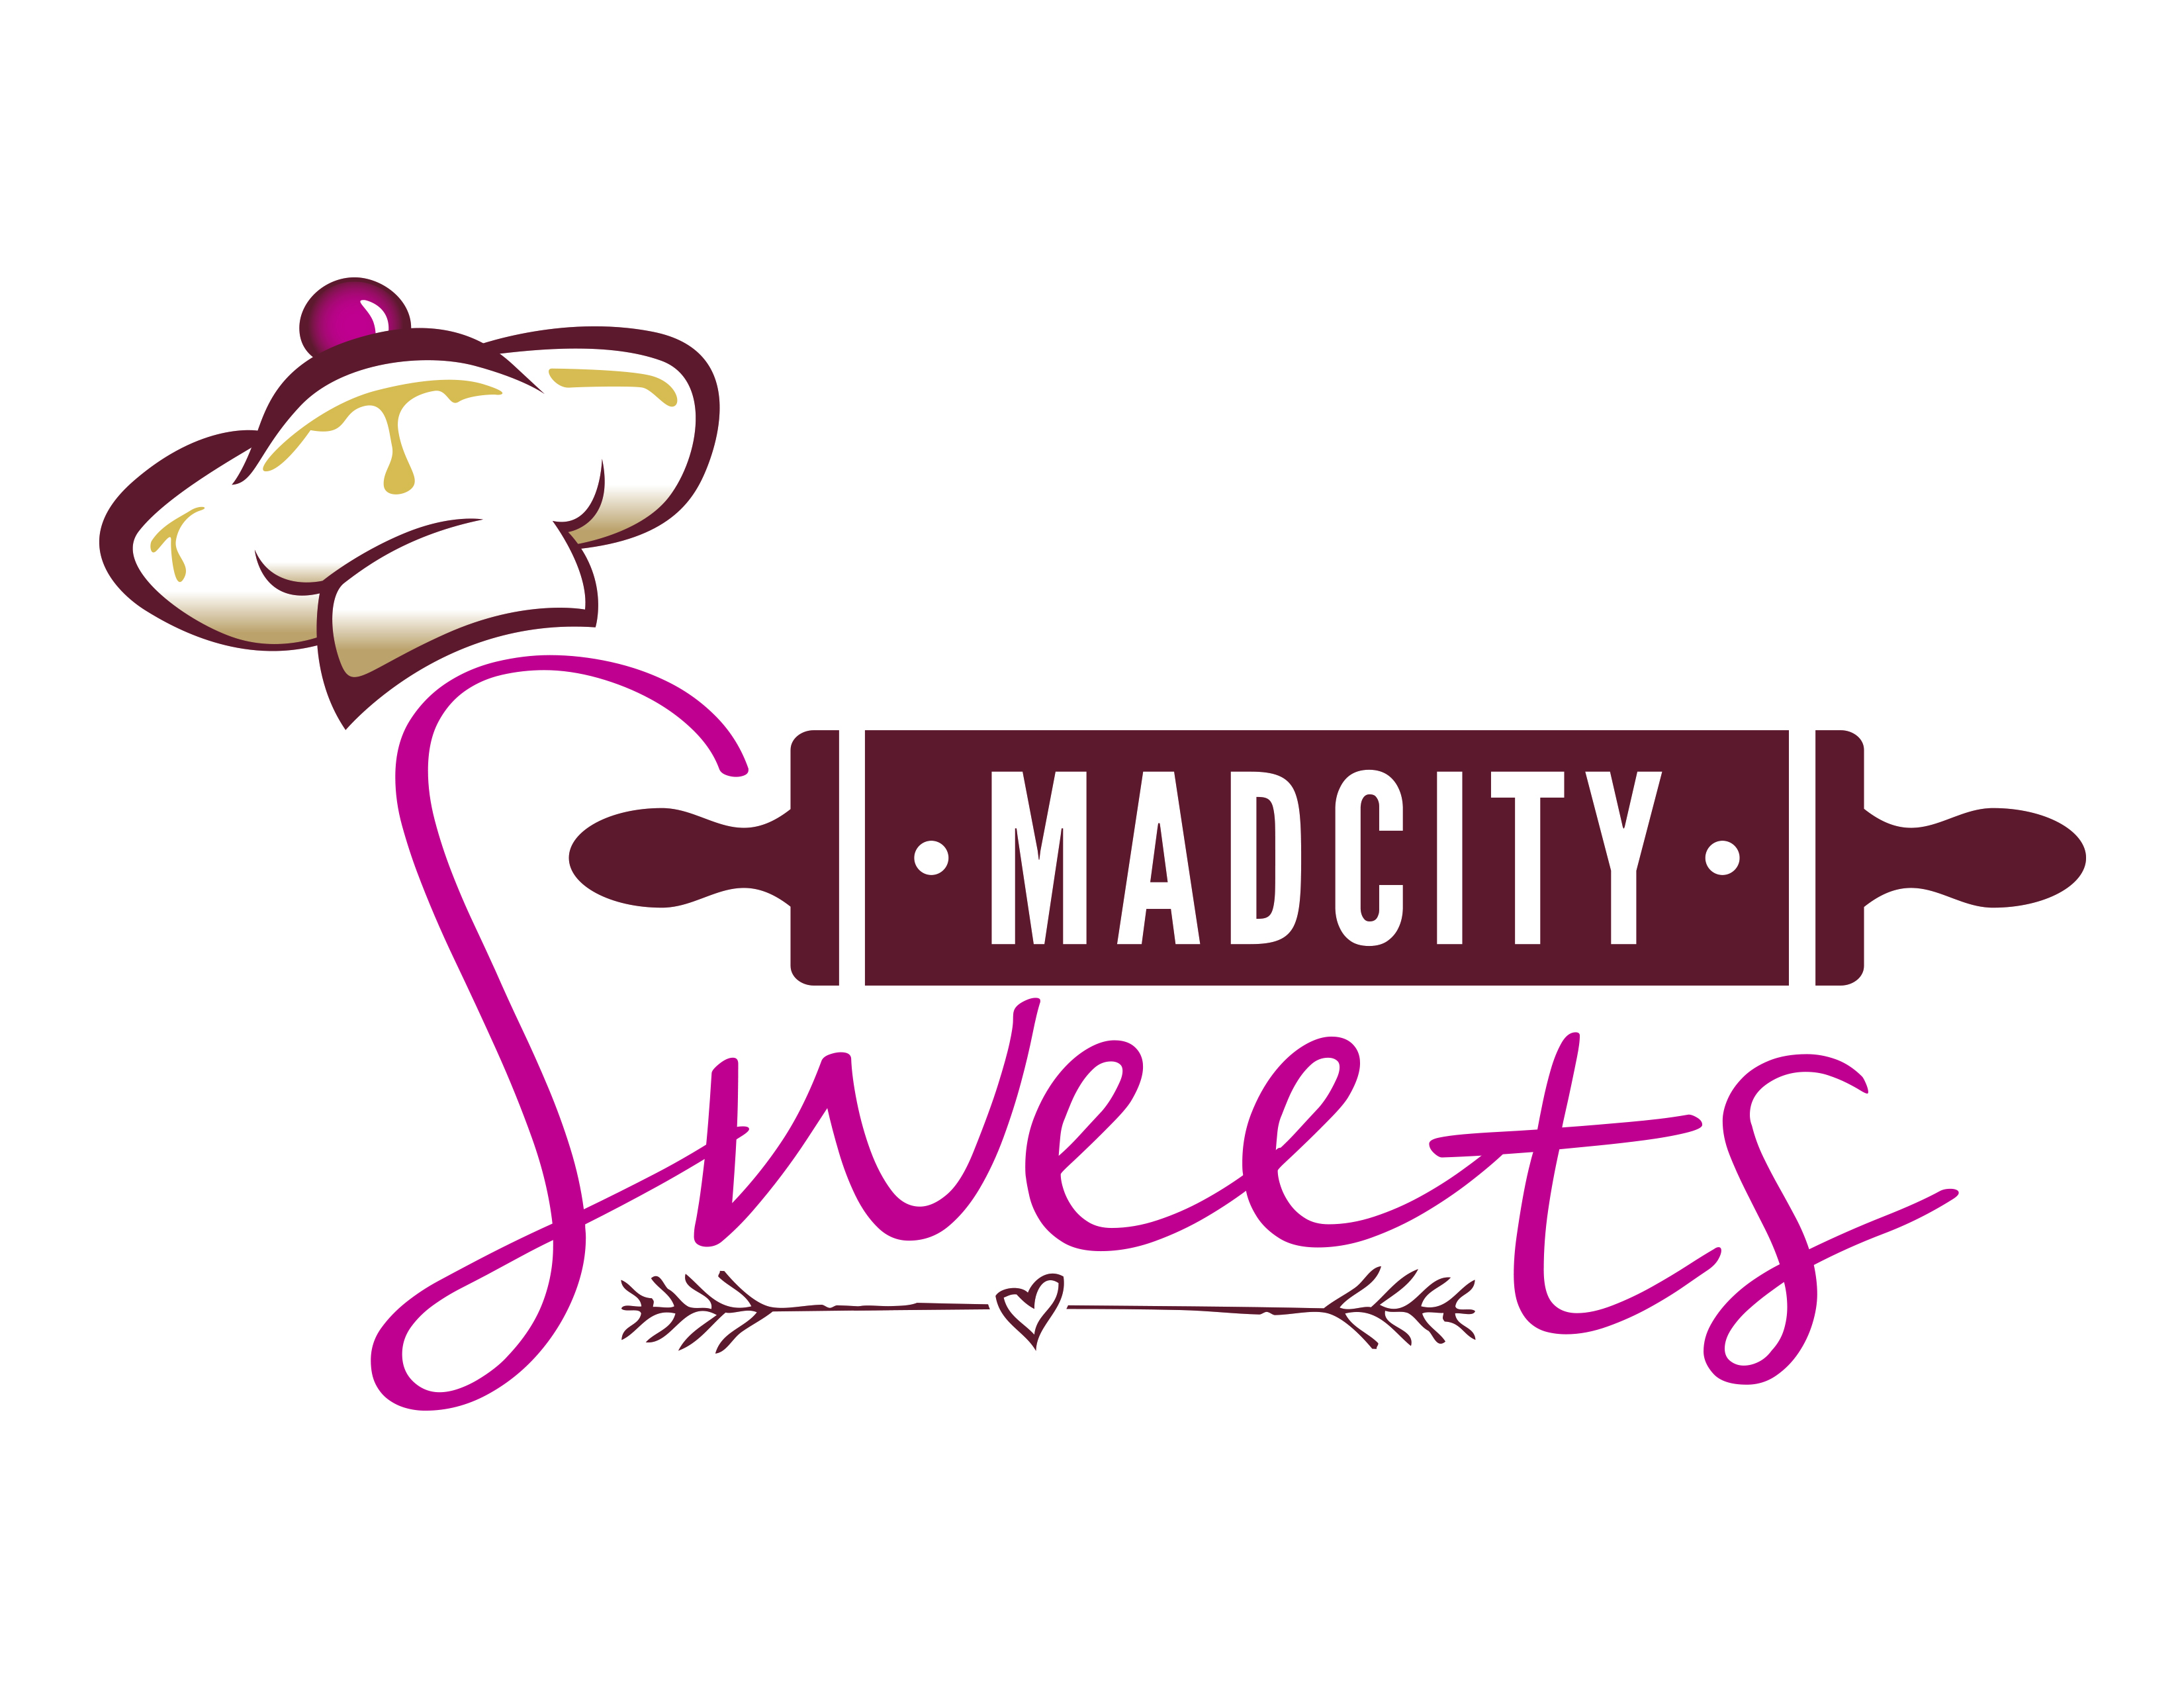 MadCity Sweets